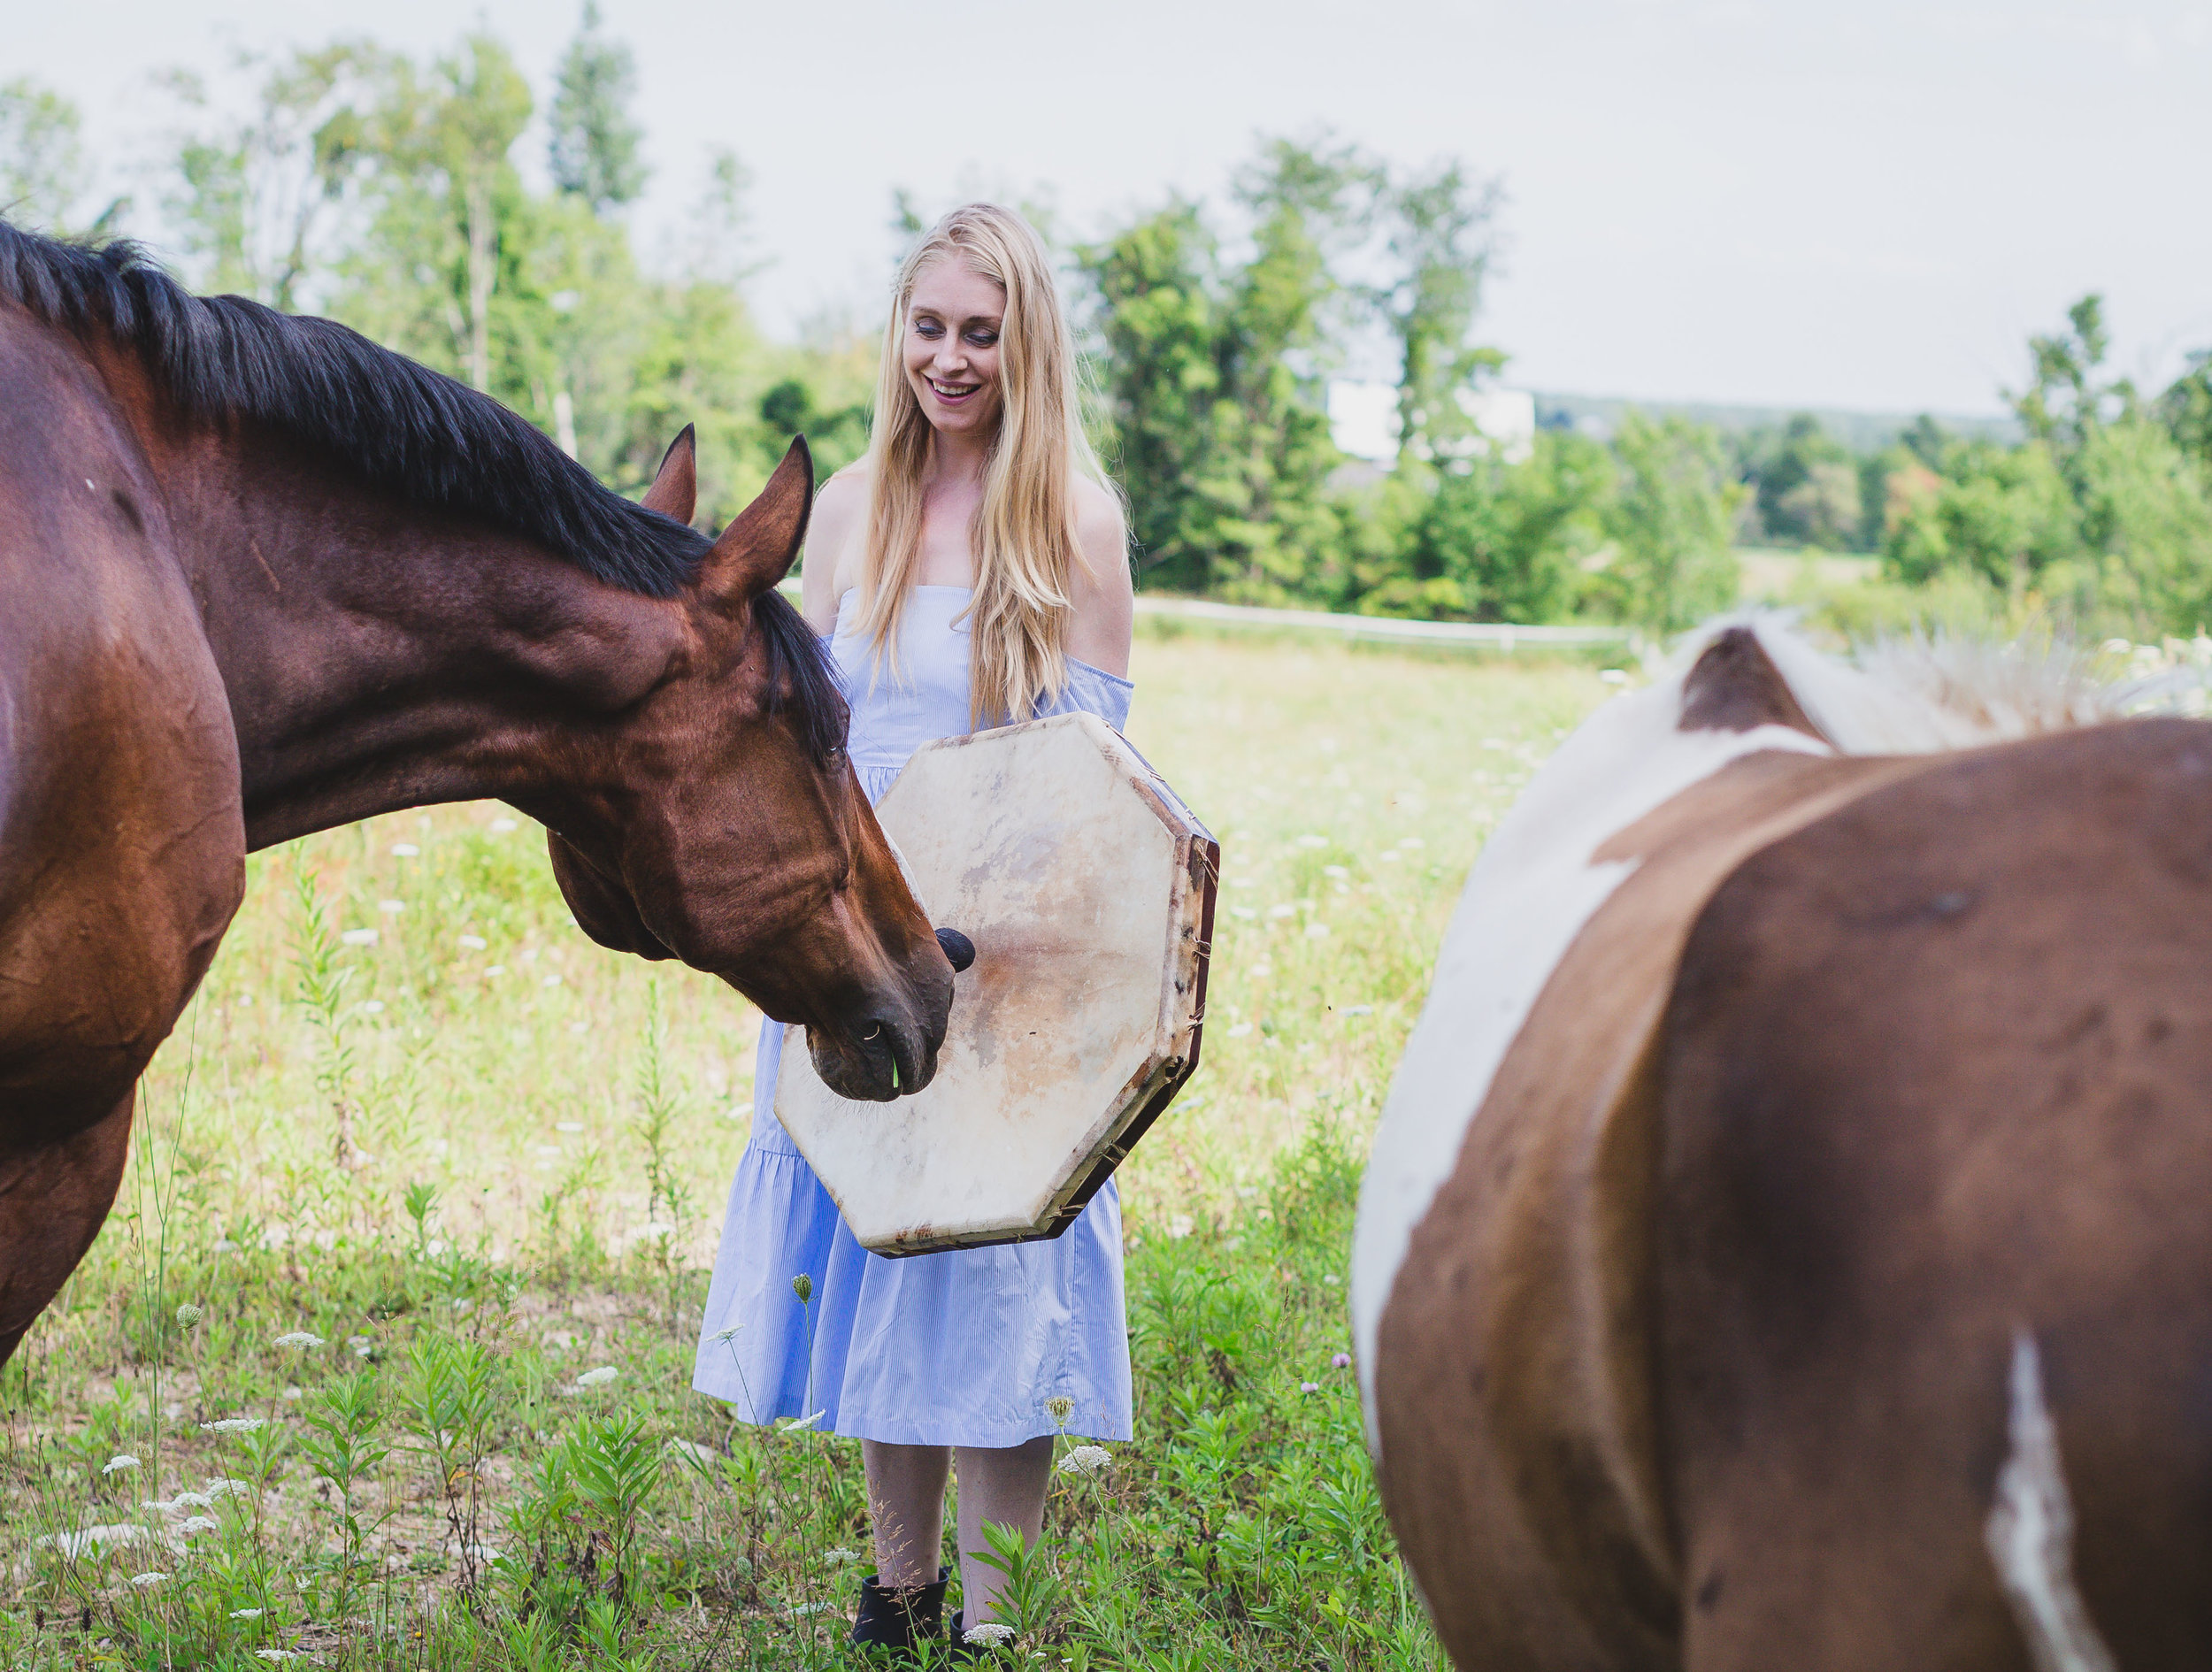 Shelly Burton drumming with Peter and Pippy as part of her healing with horses practice in Erin, Ontario.